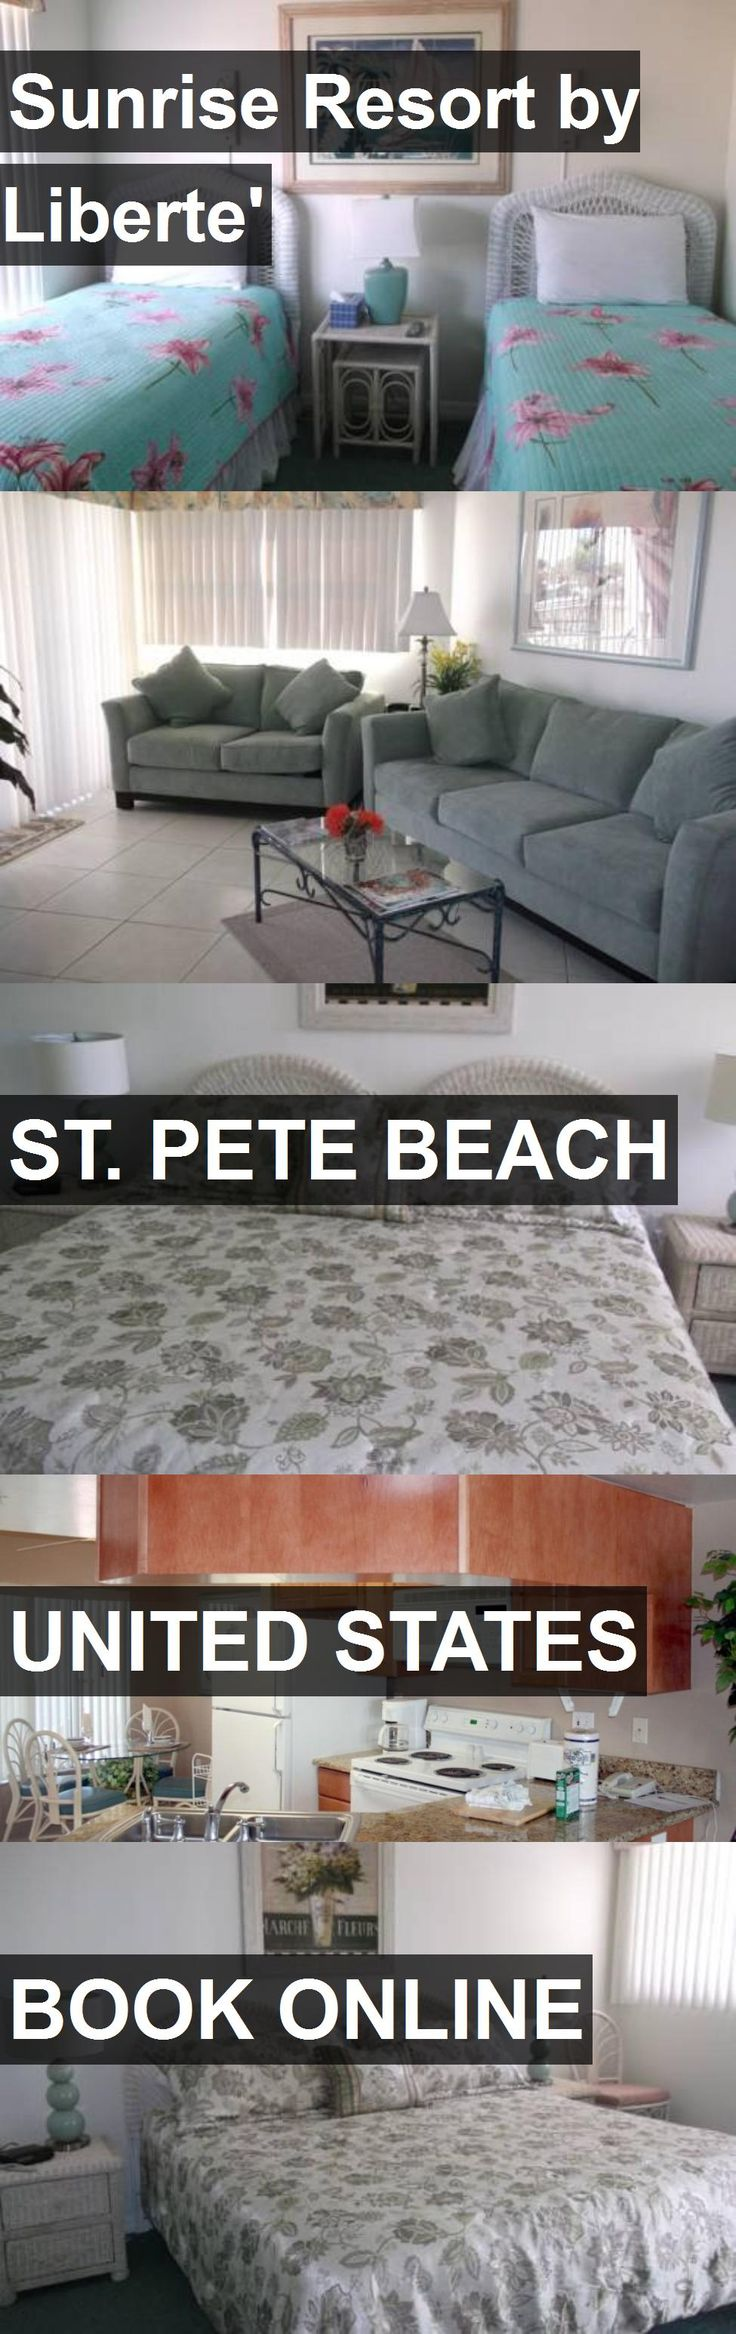 Hotel Sunrise Resort by Liberte' in St. Pete Beach, United States. For more information, photos, reviews and best prices please follow the link. #UnitedStates #St.PeteBeach #SunriseResortbyLiberte' #hotel #travel #vacation